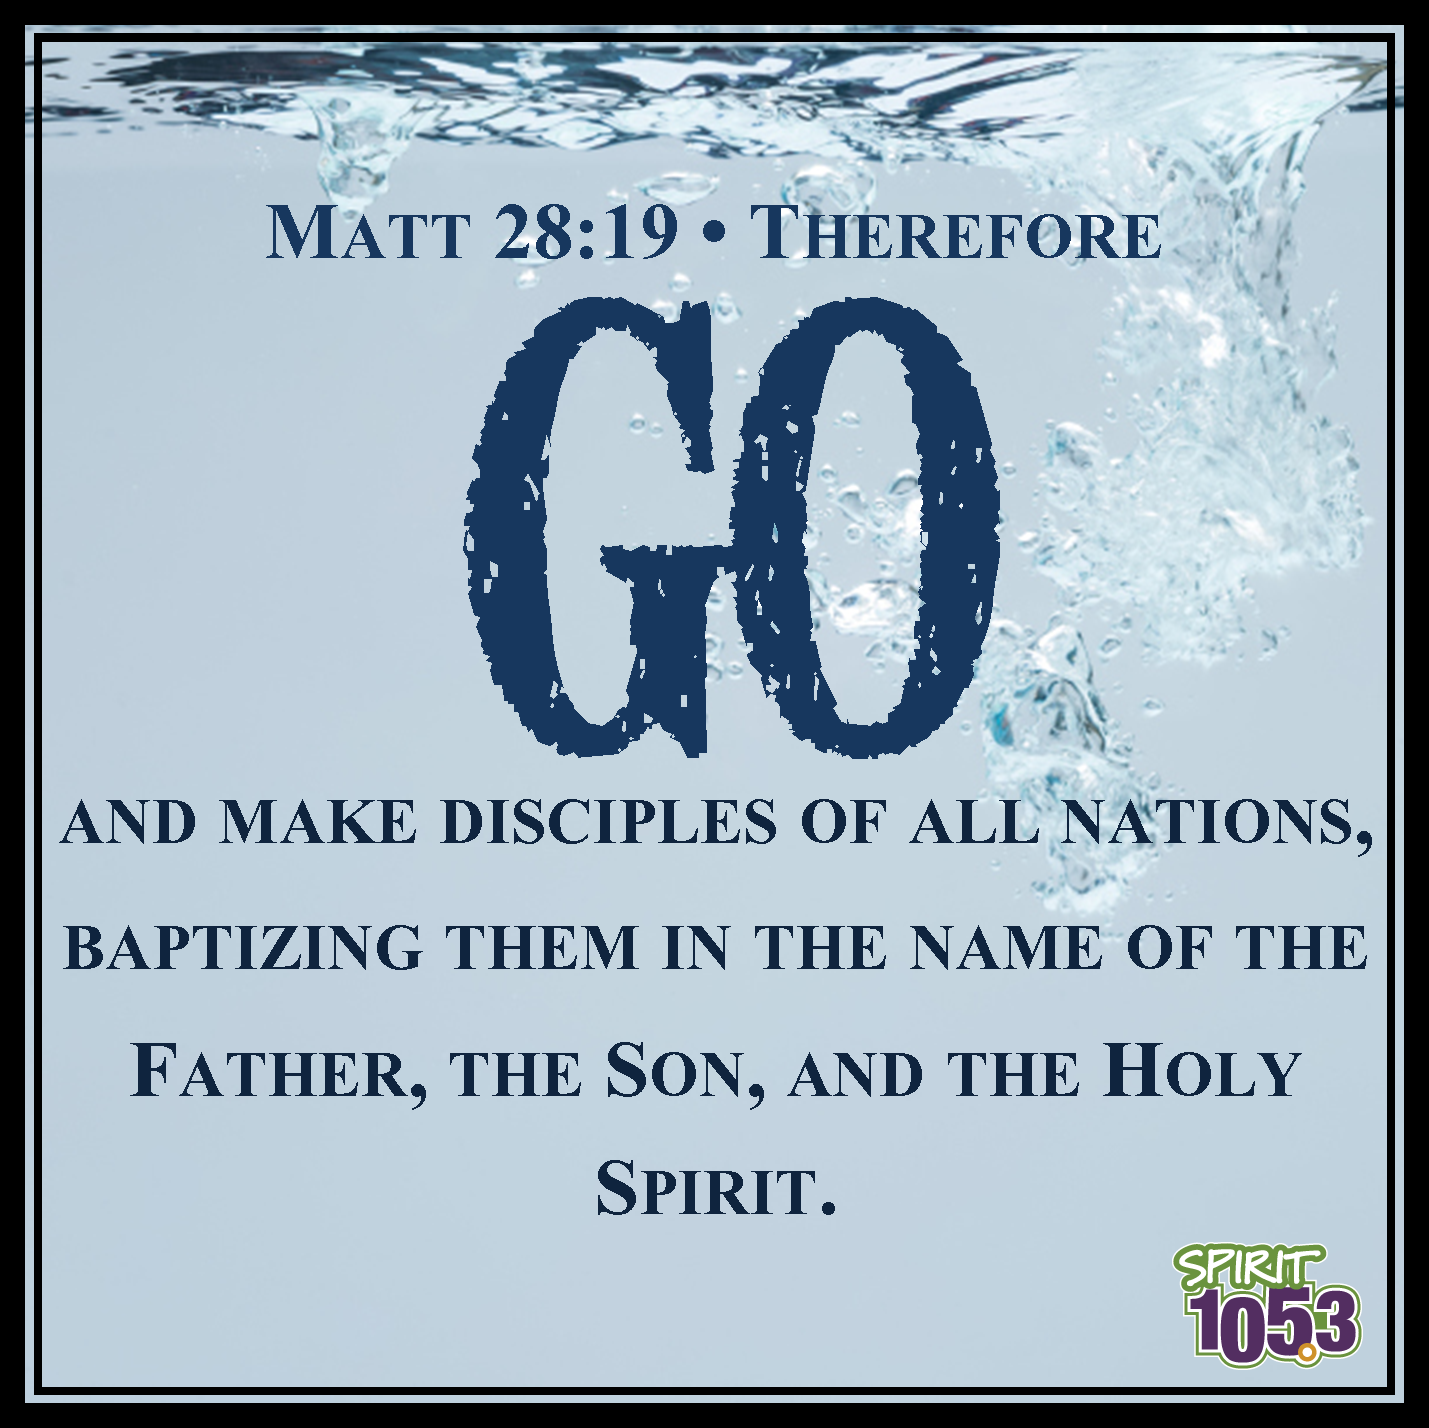 VIDEO: A Reflection on Matthew 28